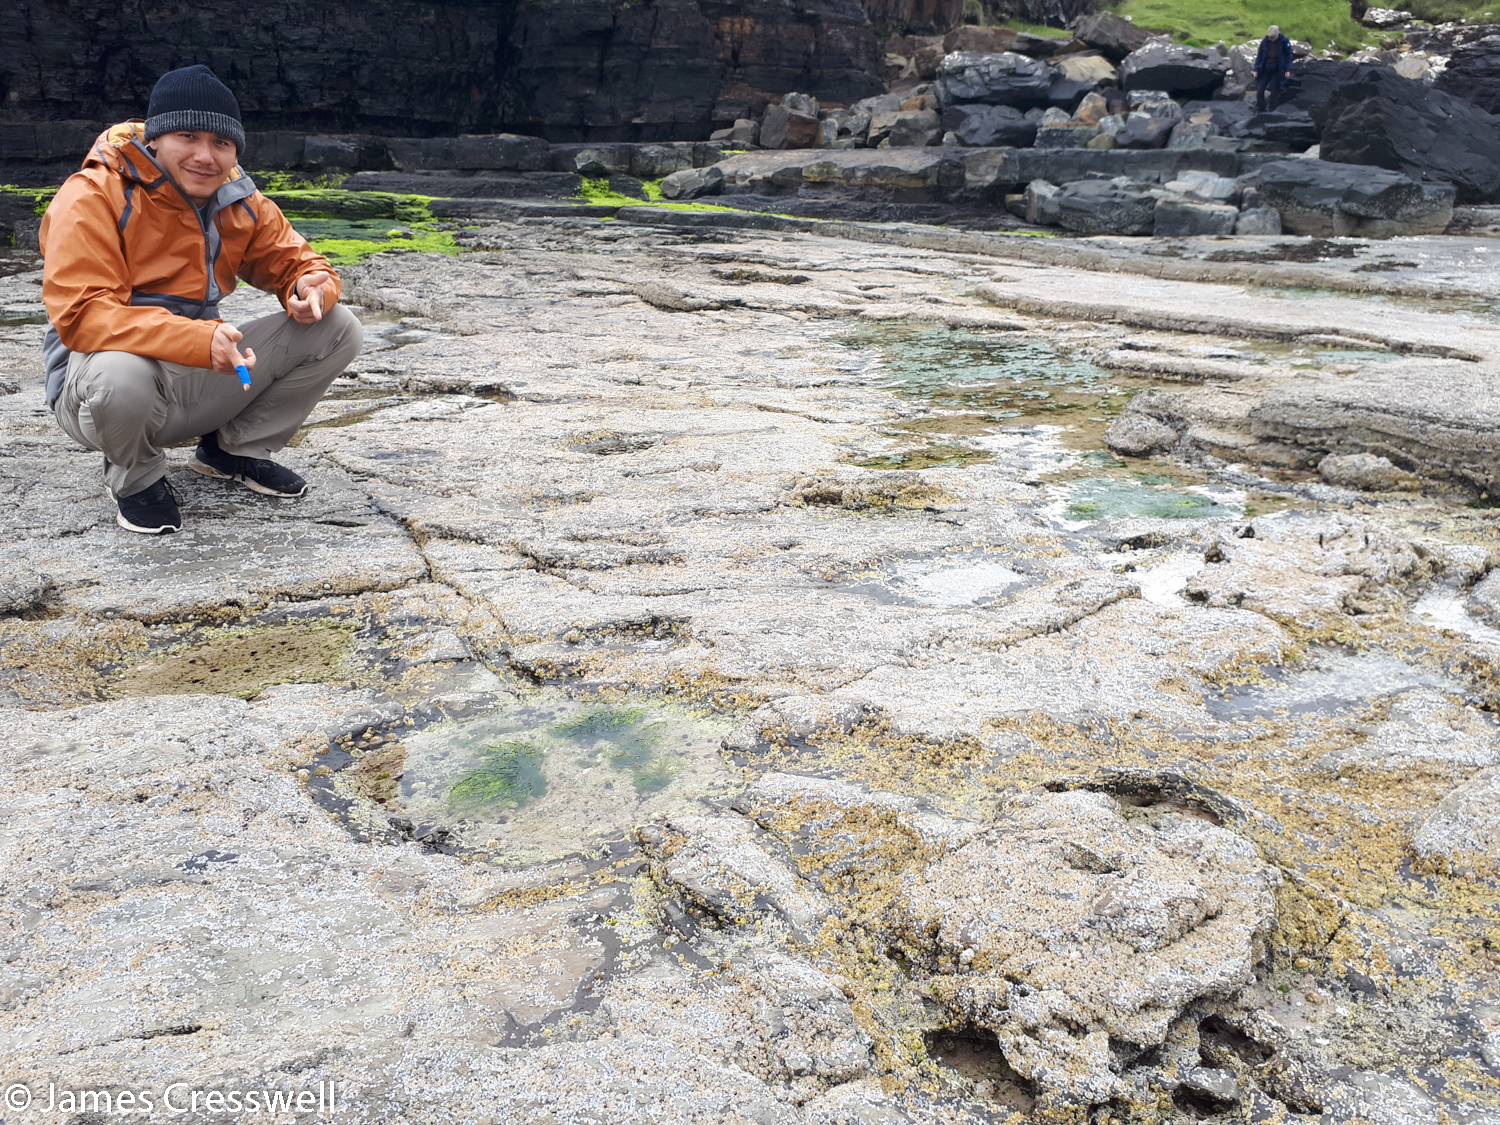 Charles with sauropod tracks at Brother's Point